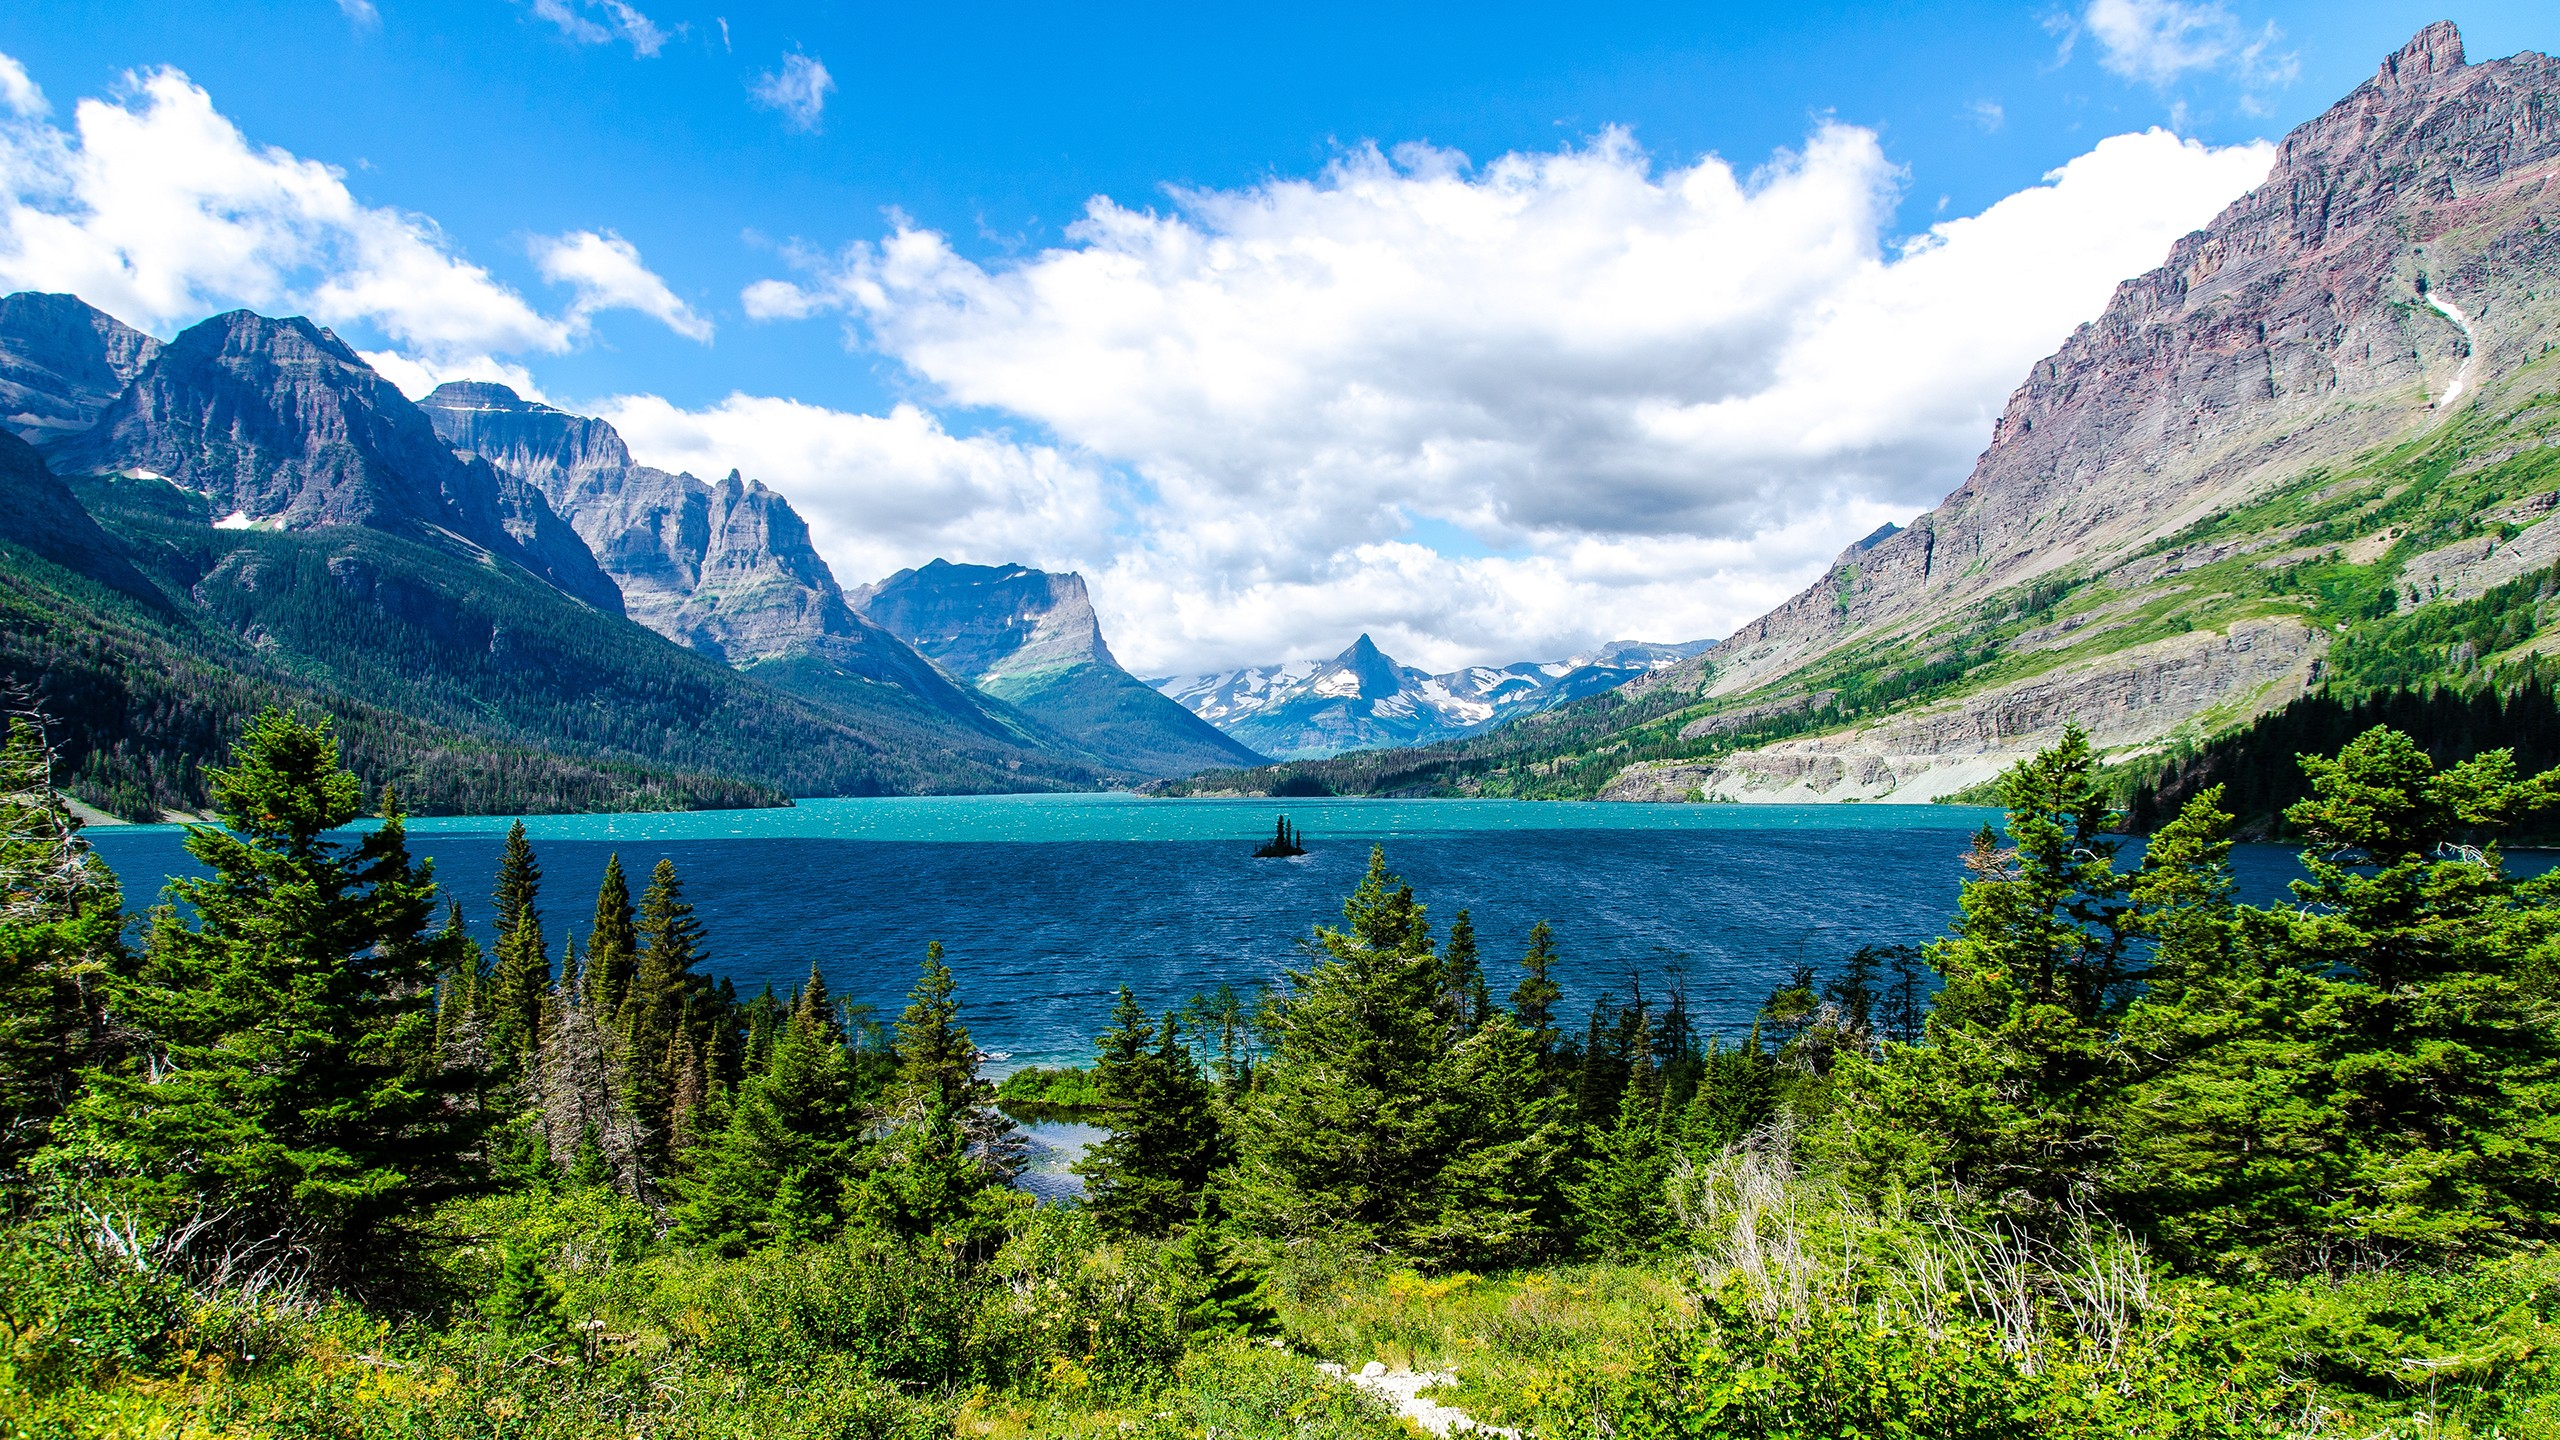 Glacier National Park. National Park in United States, North America